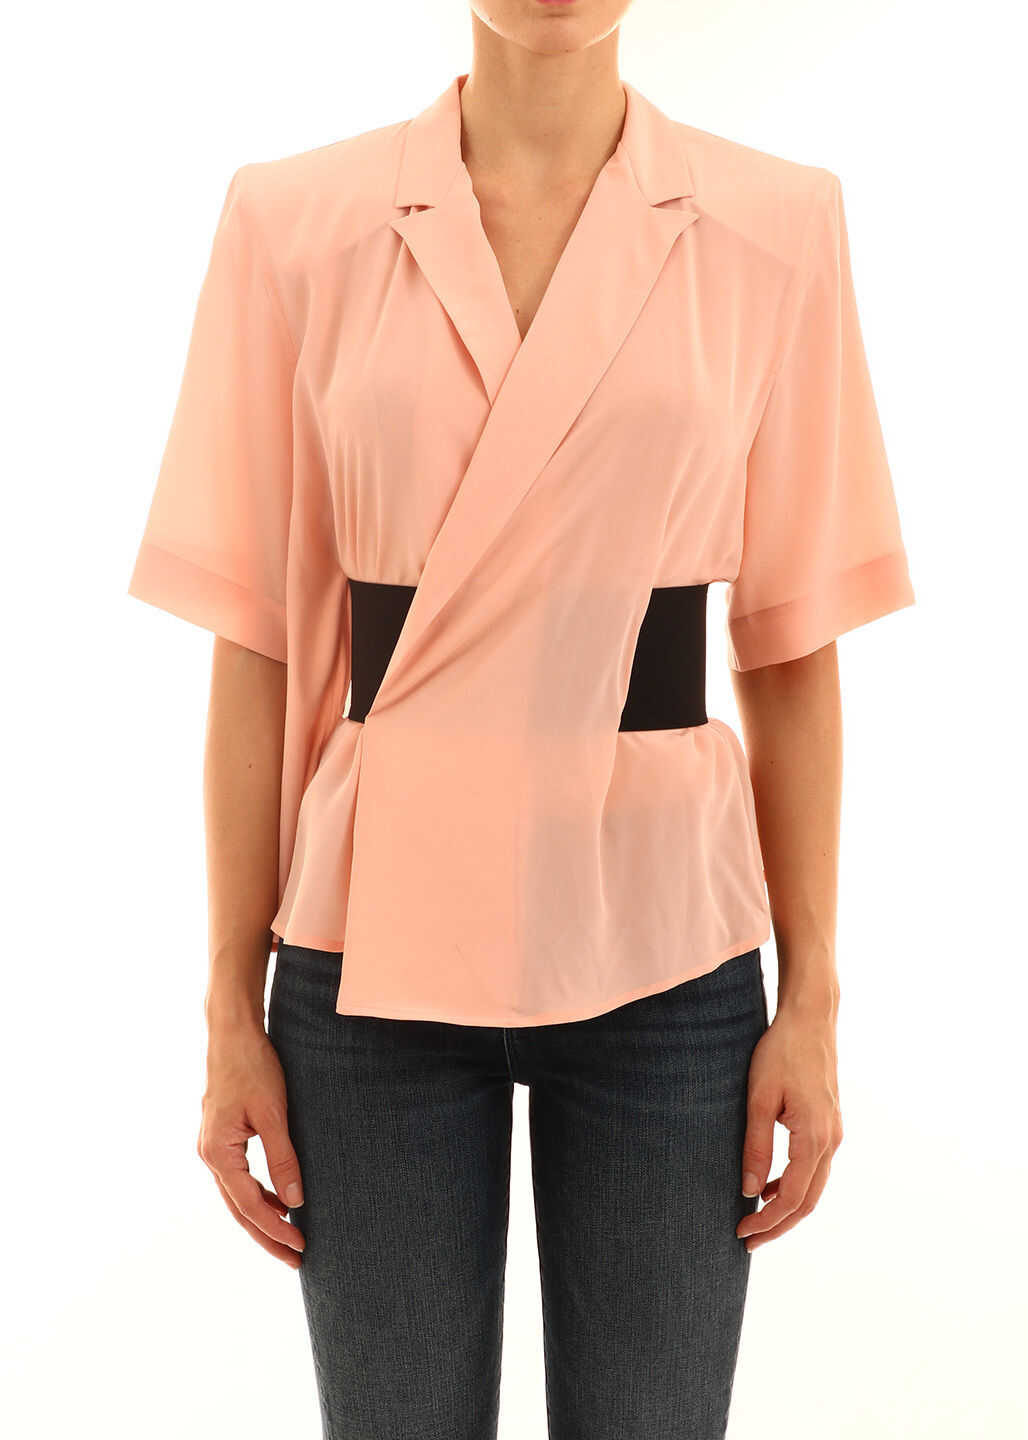 Balenciaga Shirt With Belt Pink